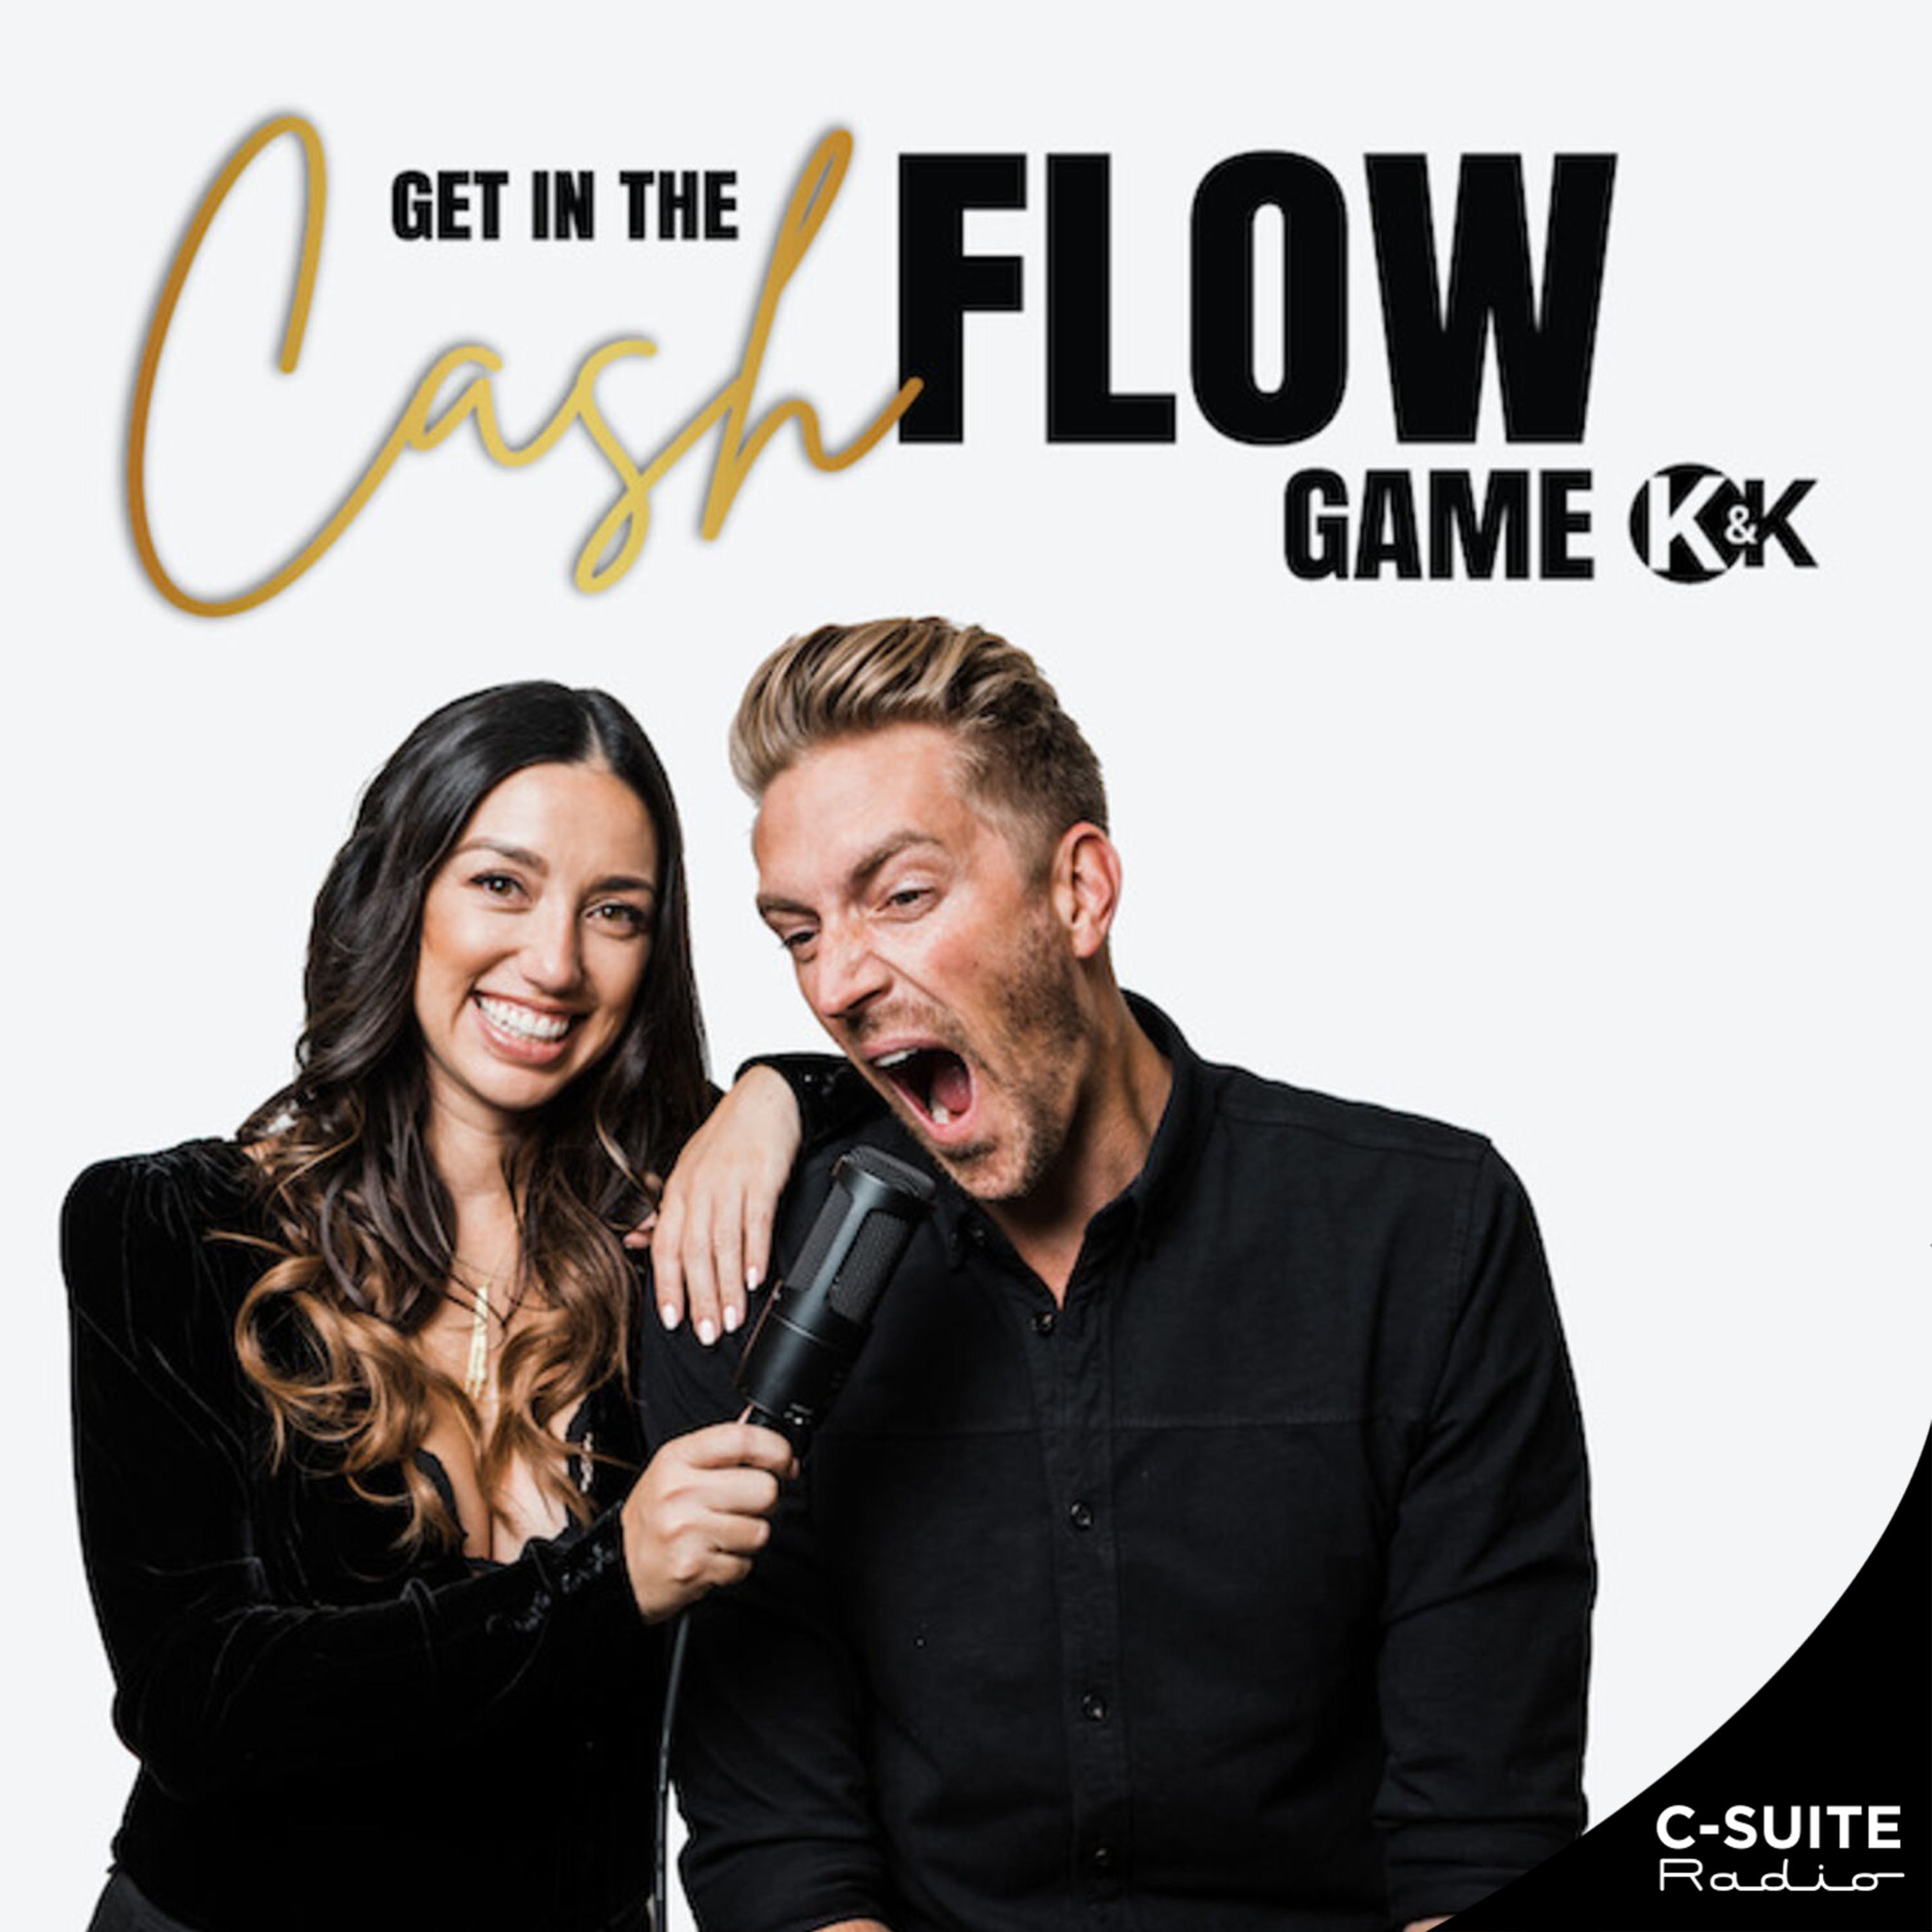 Get in the Cashflow Game